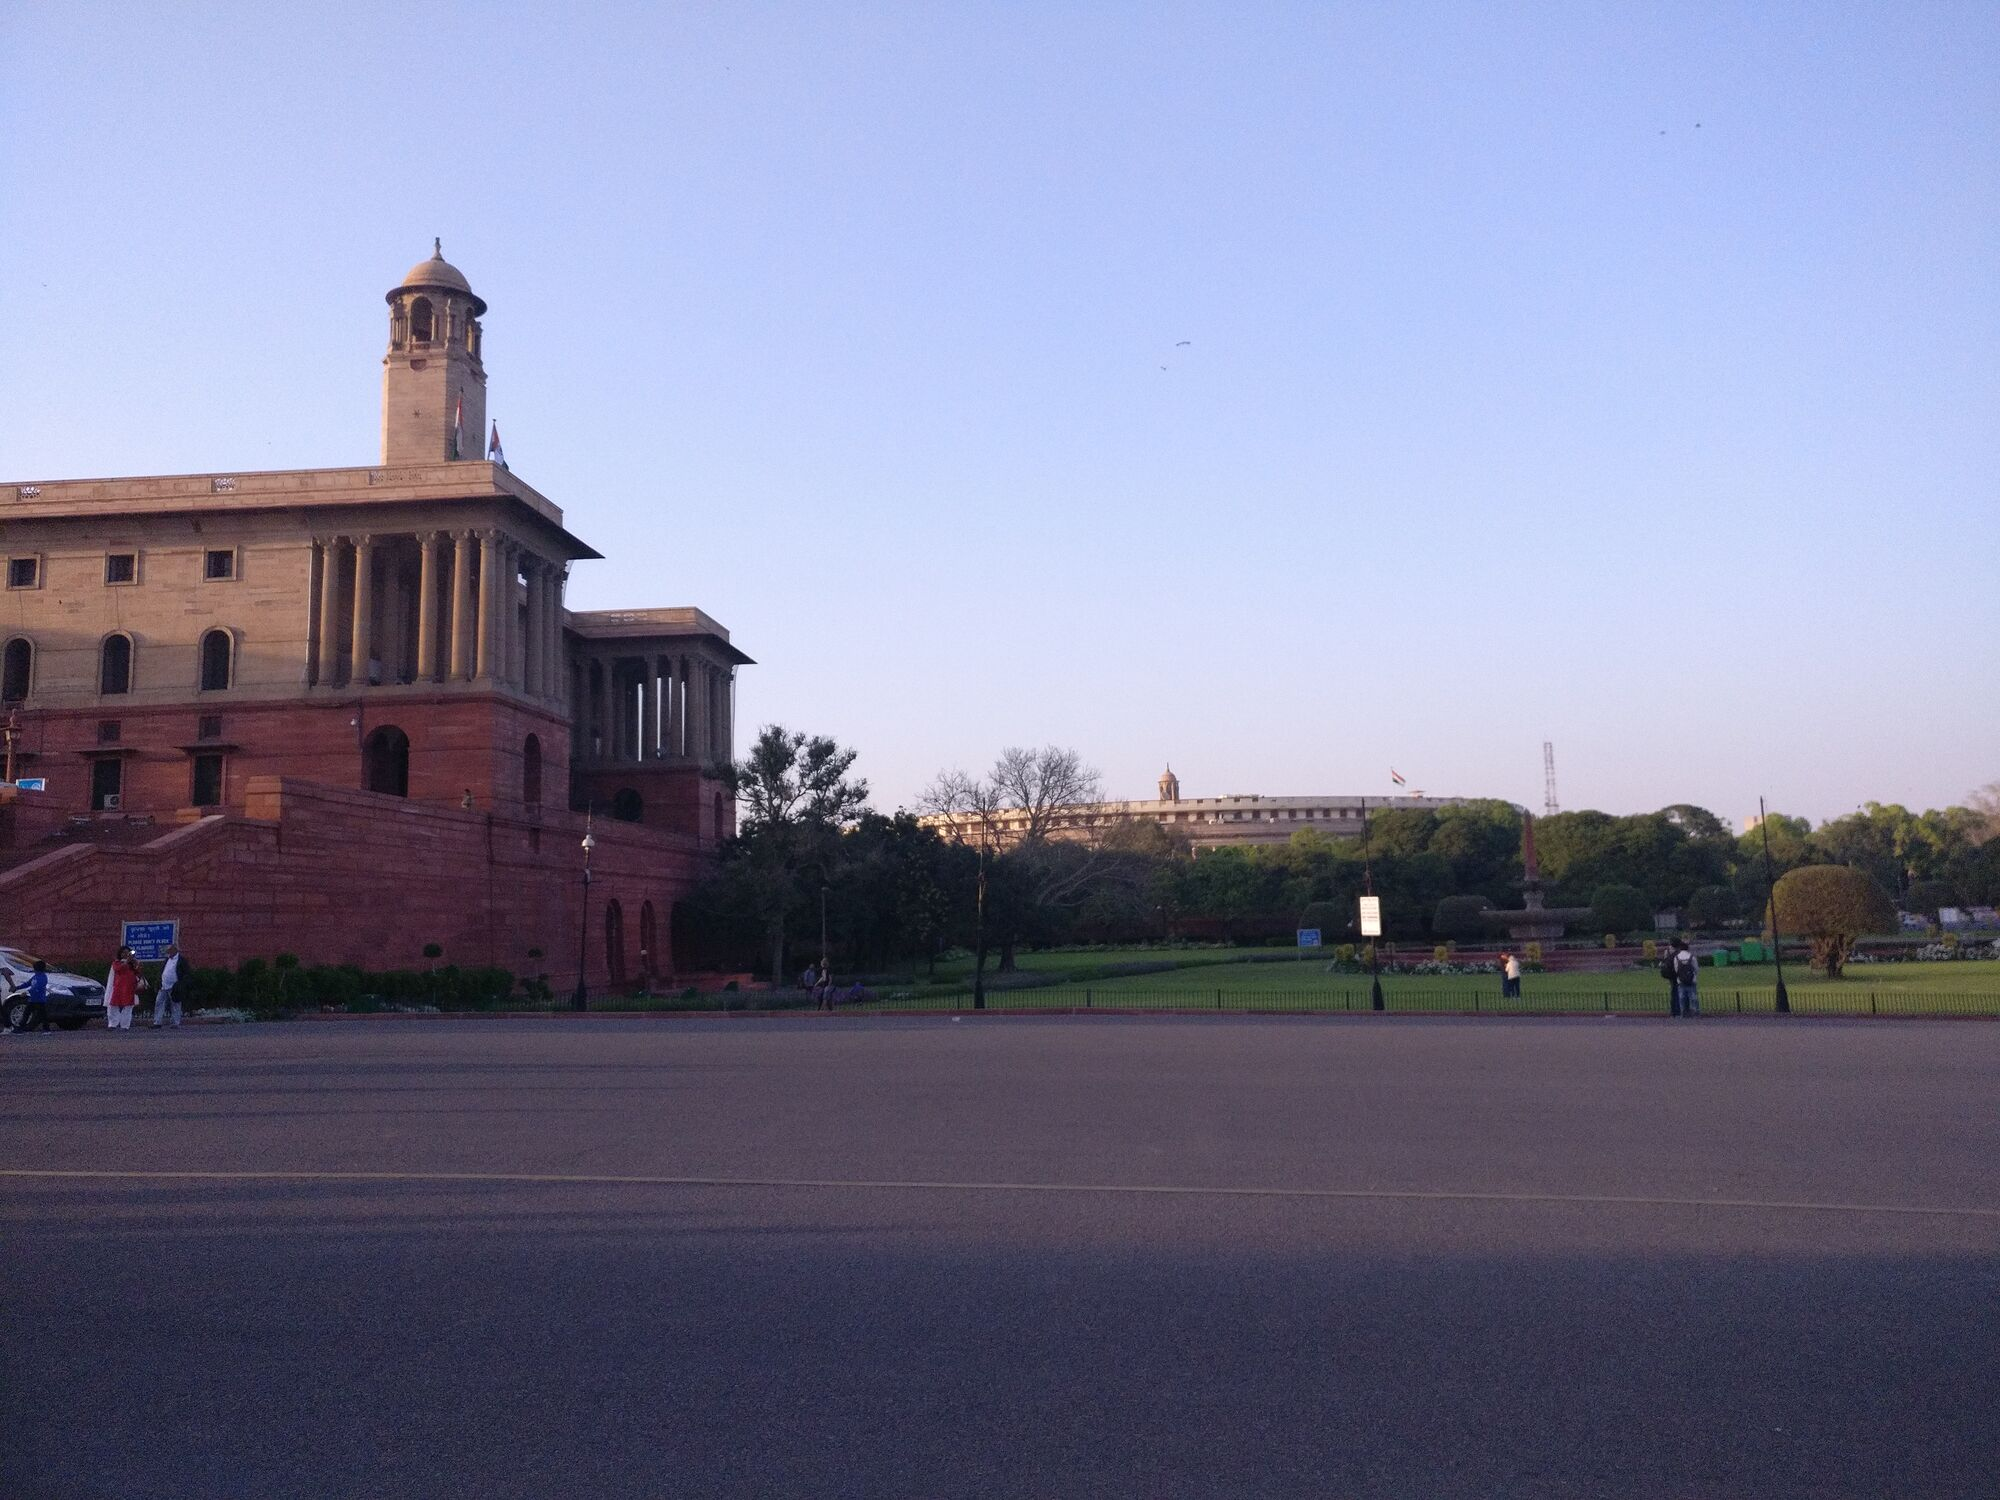 Seen here on the left is the North Block which houses the Ministry of Finance & the Home; in the distance on the right is the Parliament of India